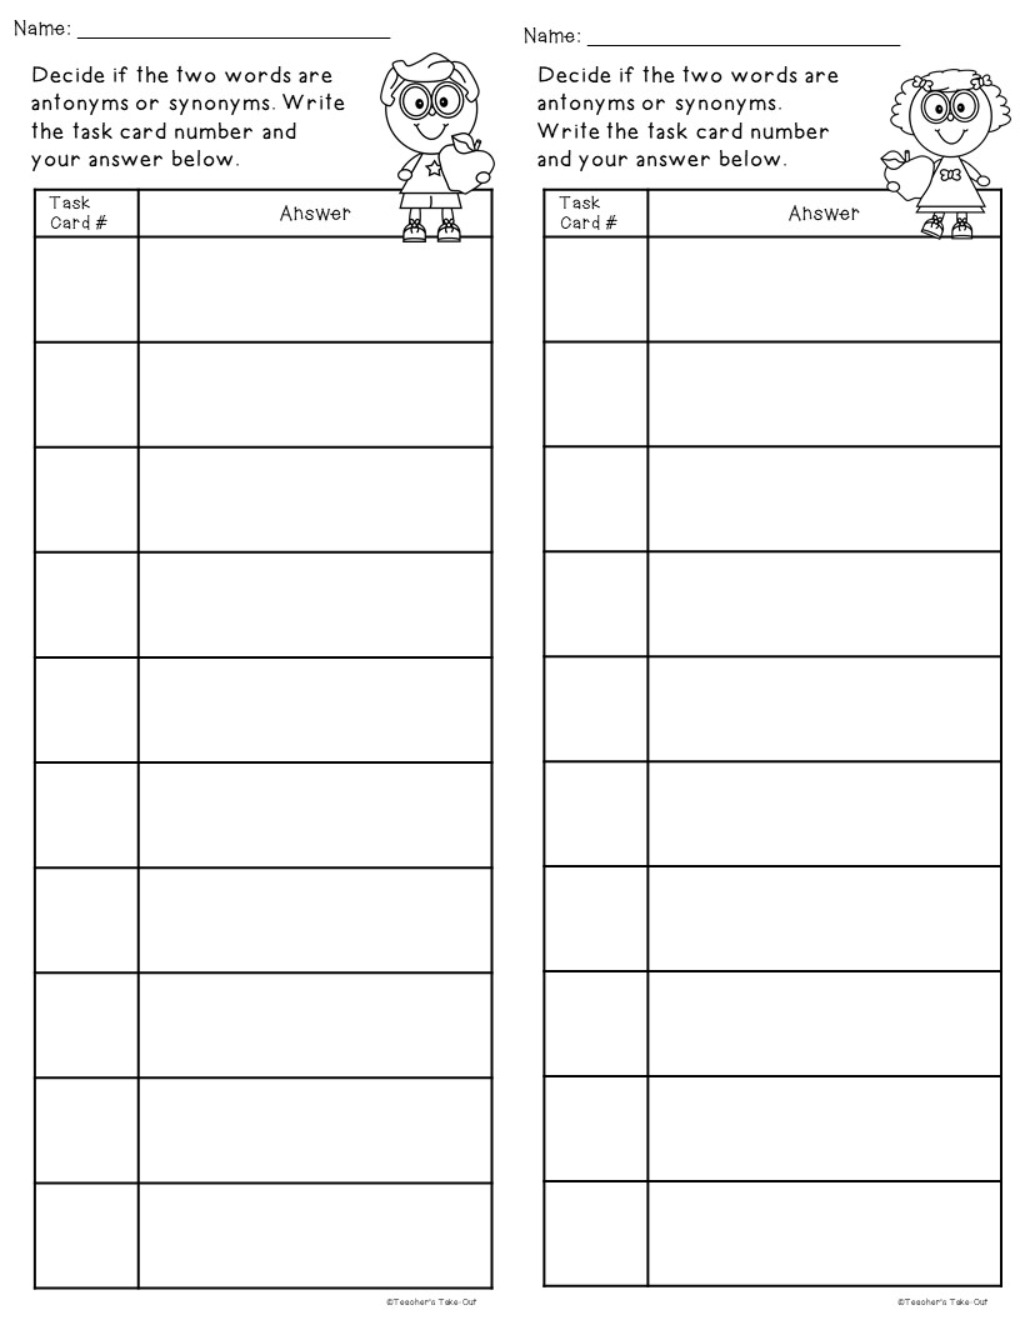 Apple Antonyms or Synonyms Task Cards